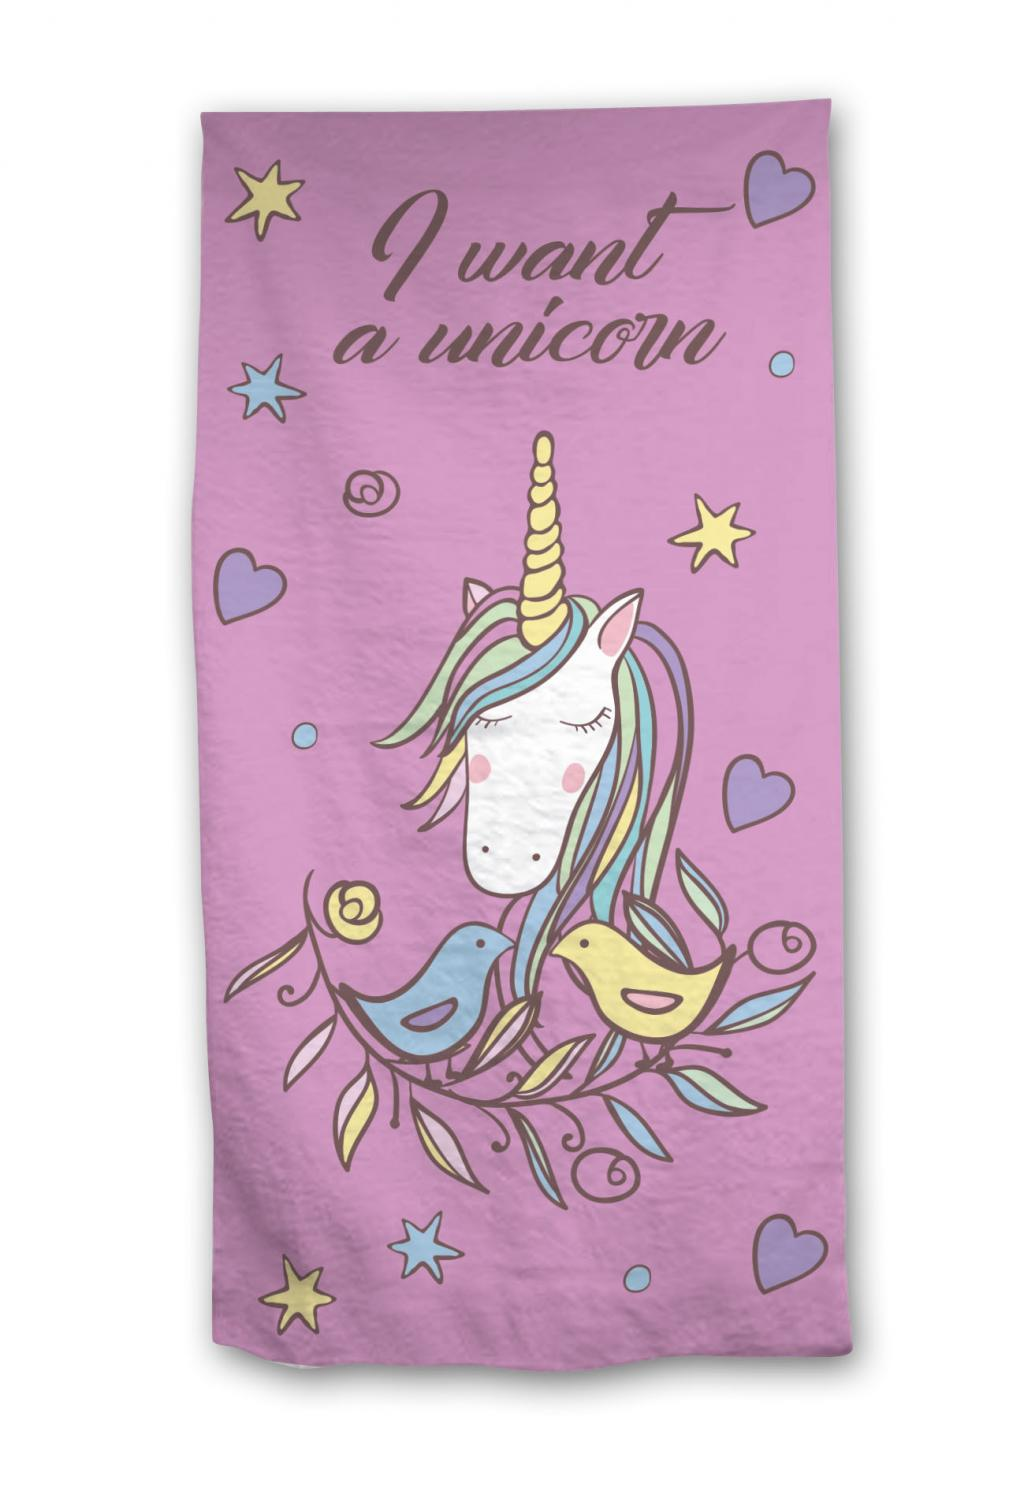 UNICORN - Serviette de Plage 100% Cotton - 70 x 140 - I Want a Unicorn